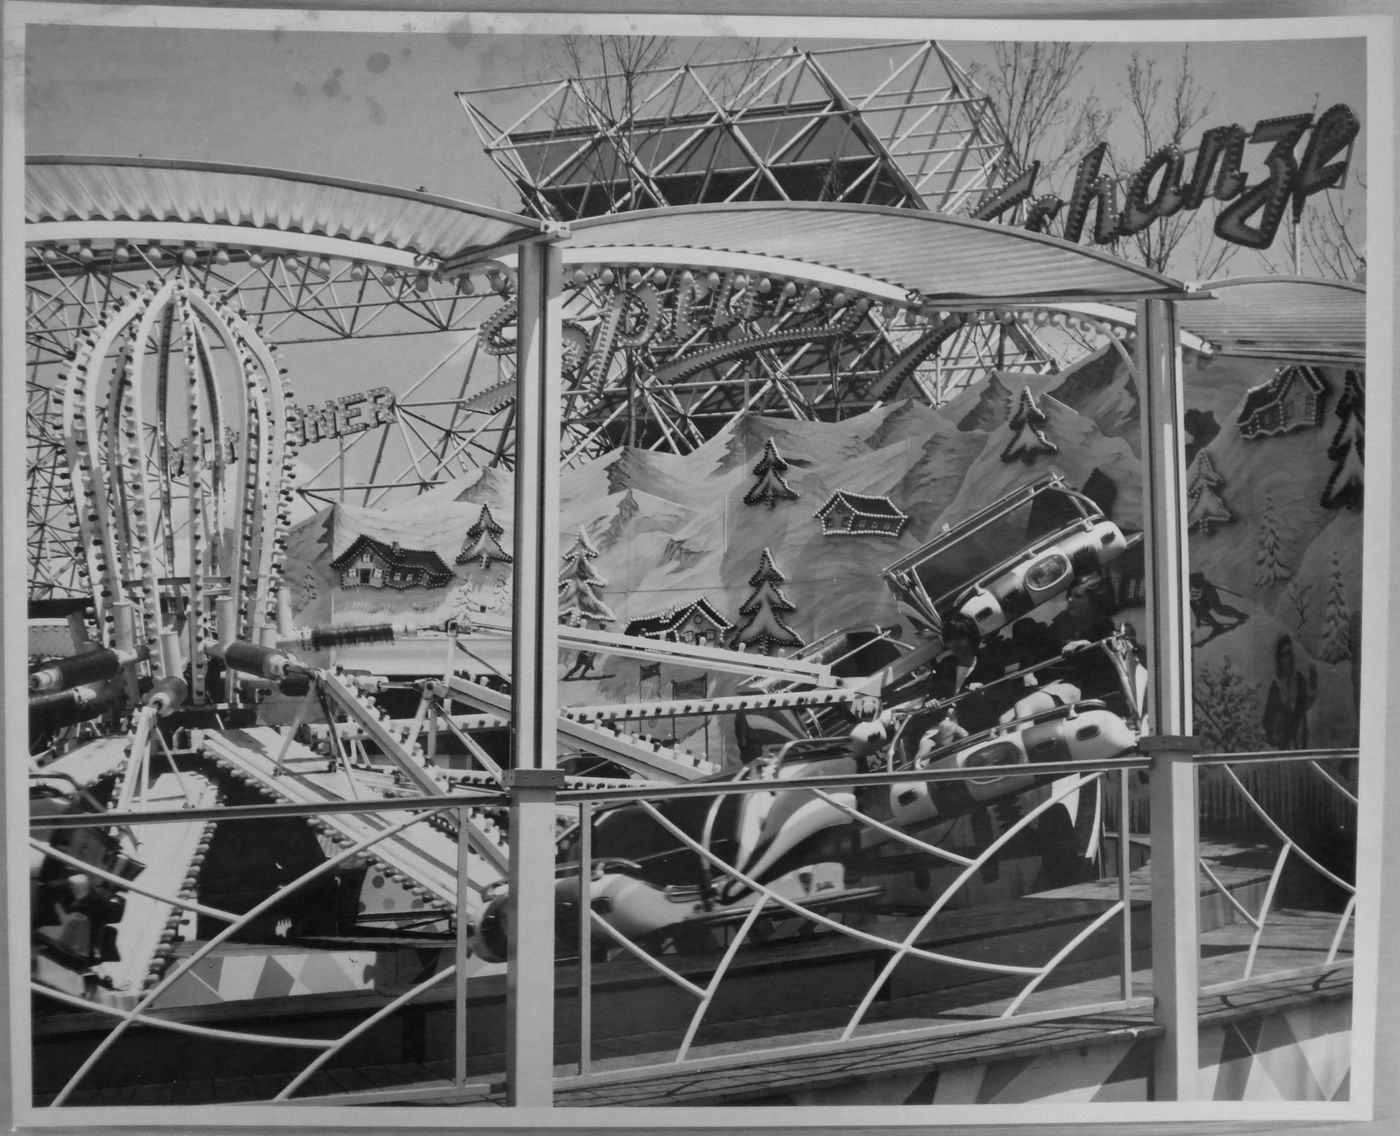 View of an unidentified amusement ride at La Ronde, Expo 67, Montréal, Québec